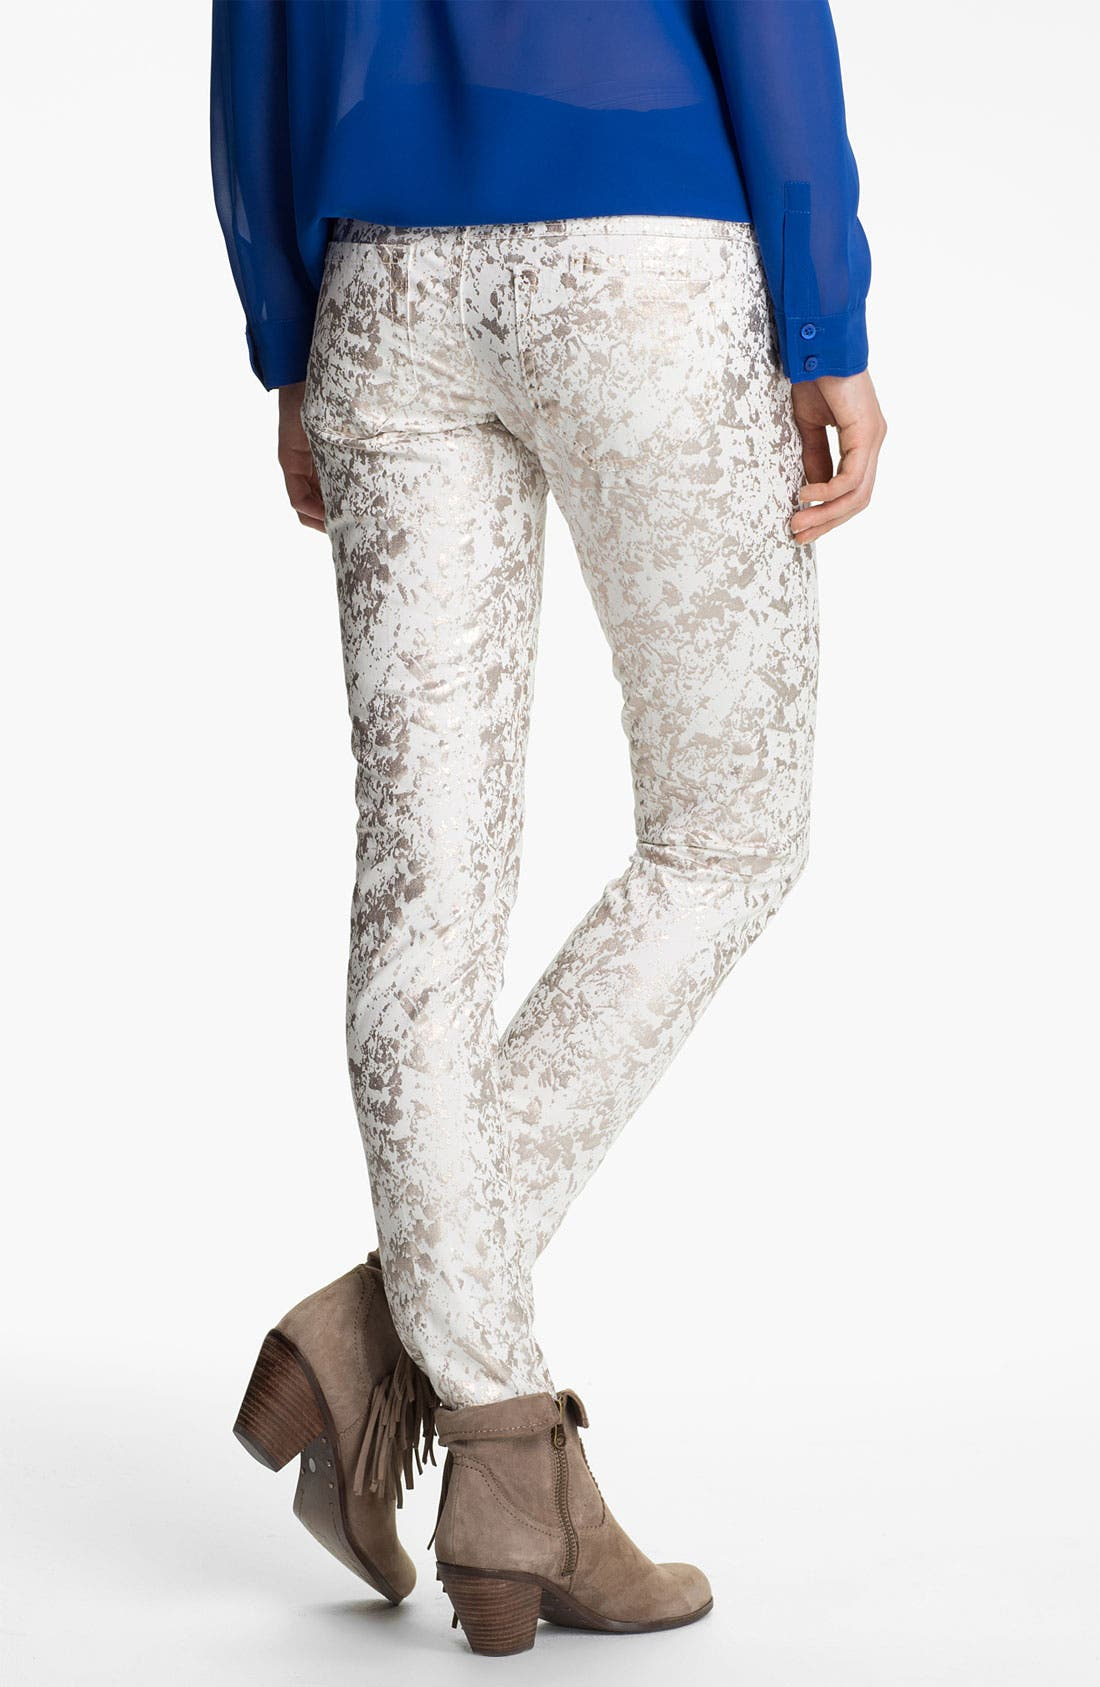 Alternate Image 1 Selected - Jolt Metallic Splatter Skinny Jeans (Juniors)